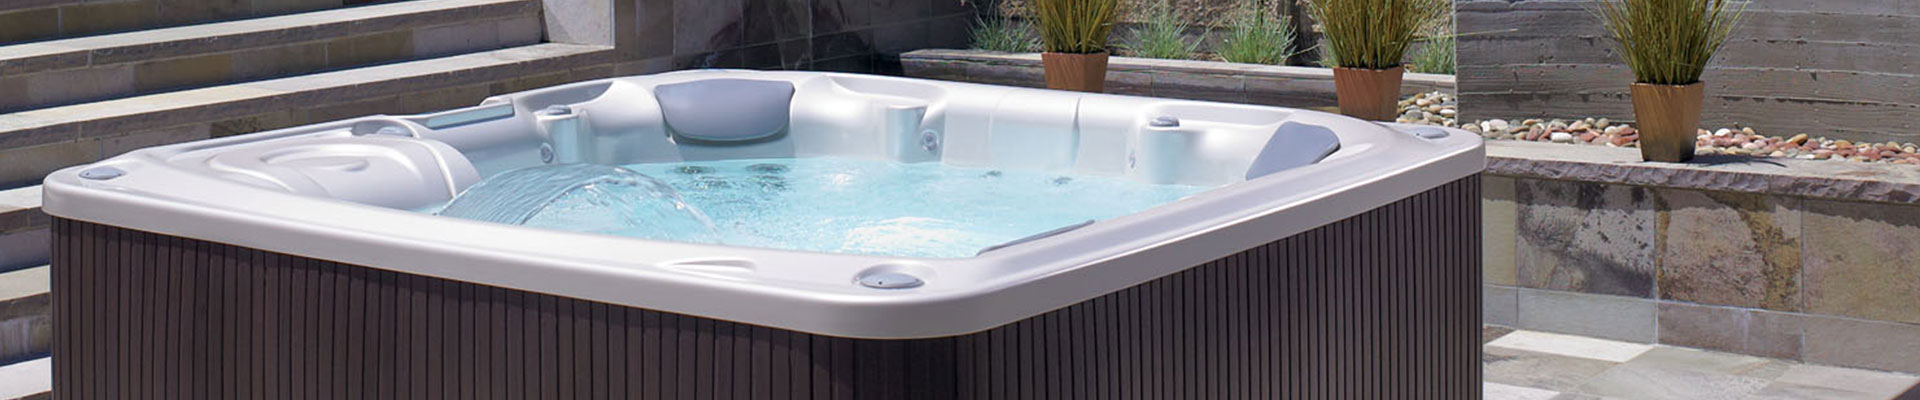 Hot Tub Clearance Sale - Branson Hot Tubs and Pools